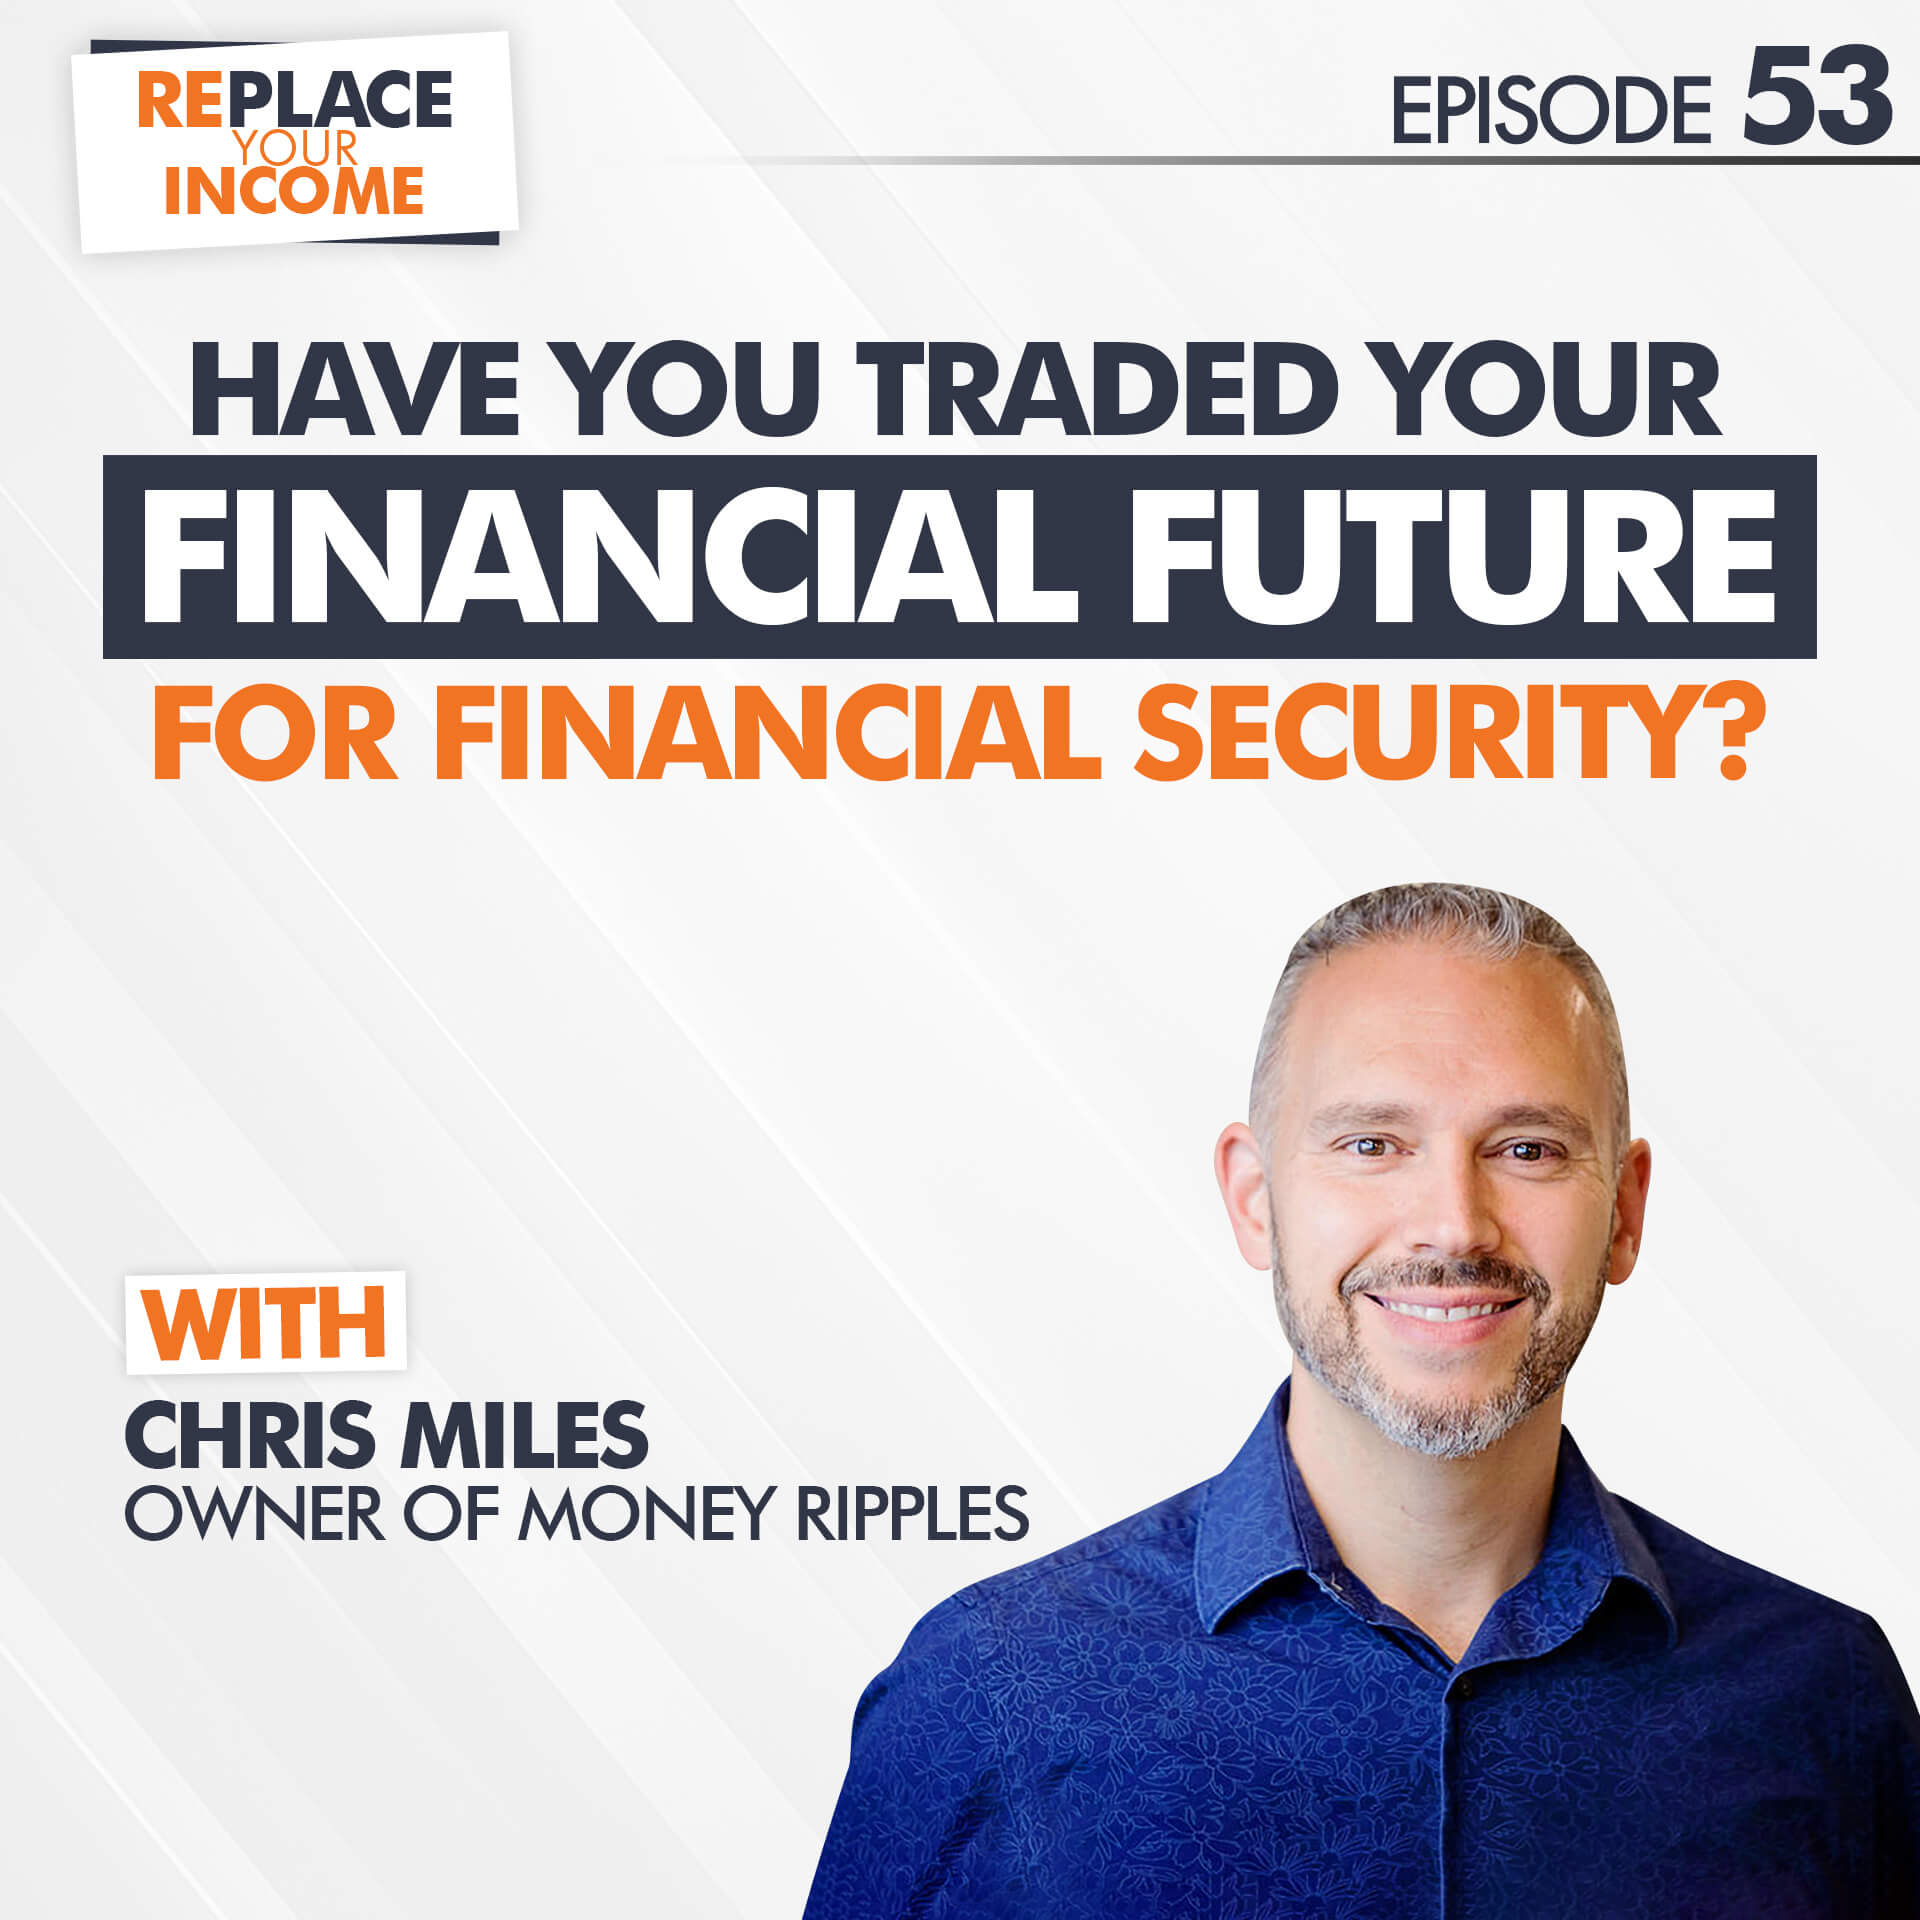 Have You Traded Your Financial Future For Financial Security?